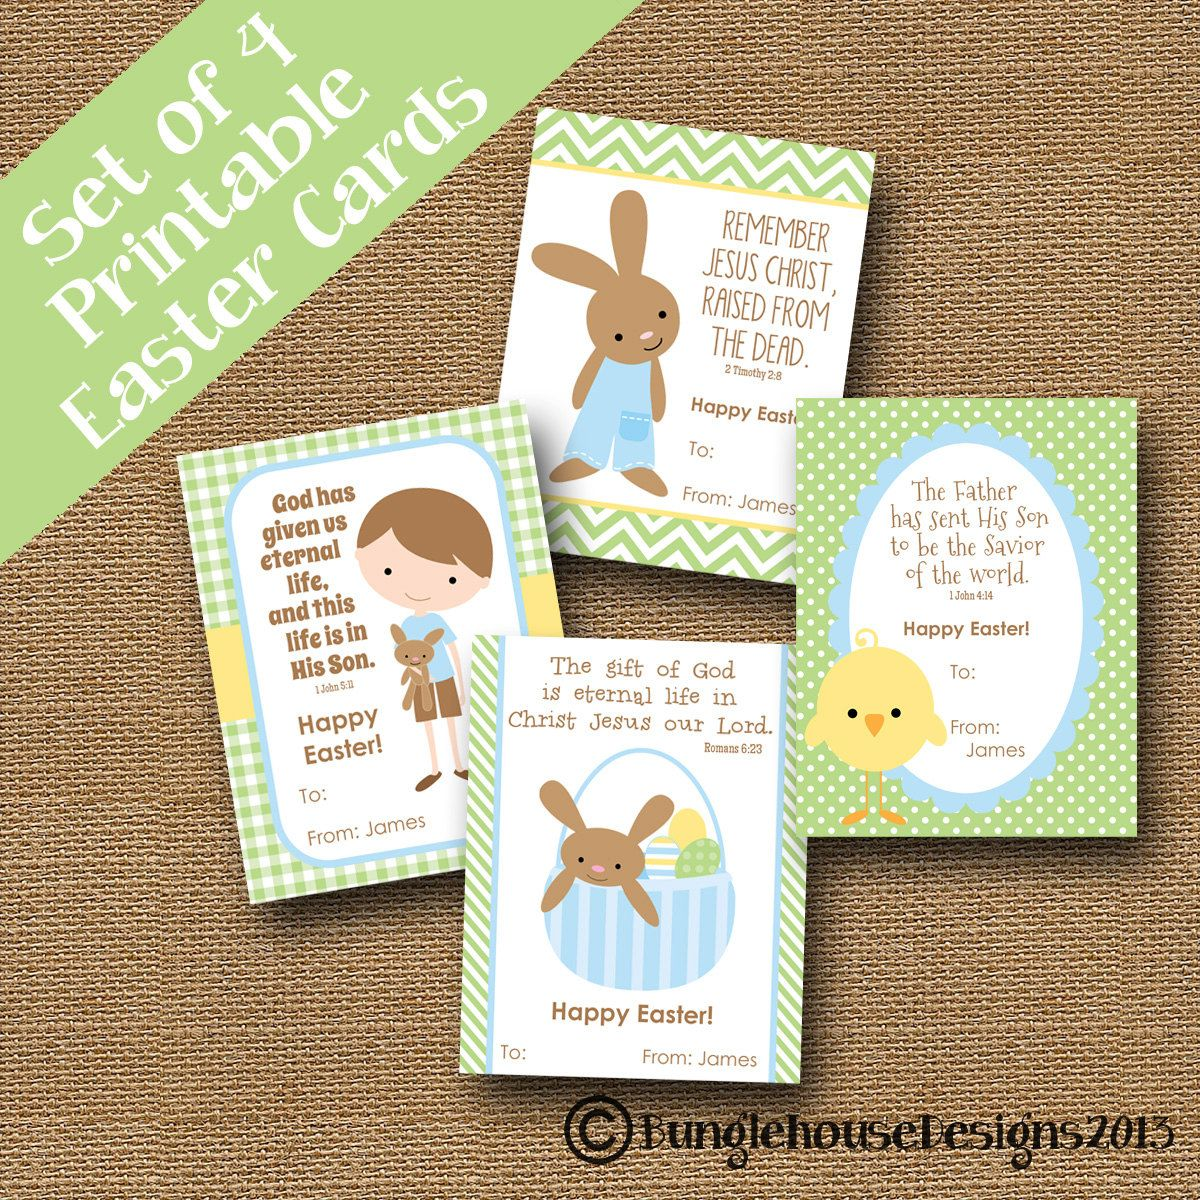 Childrens easter cards printable christian easter card kids childrens easter cards diy printable by bunglehousedesigns m4hsunfo Image collections